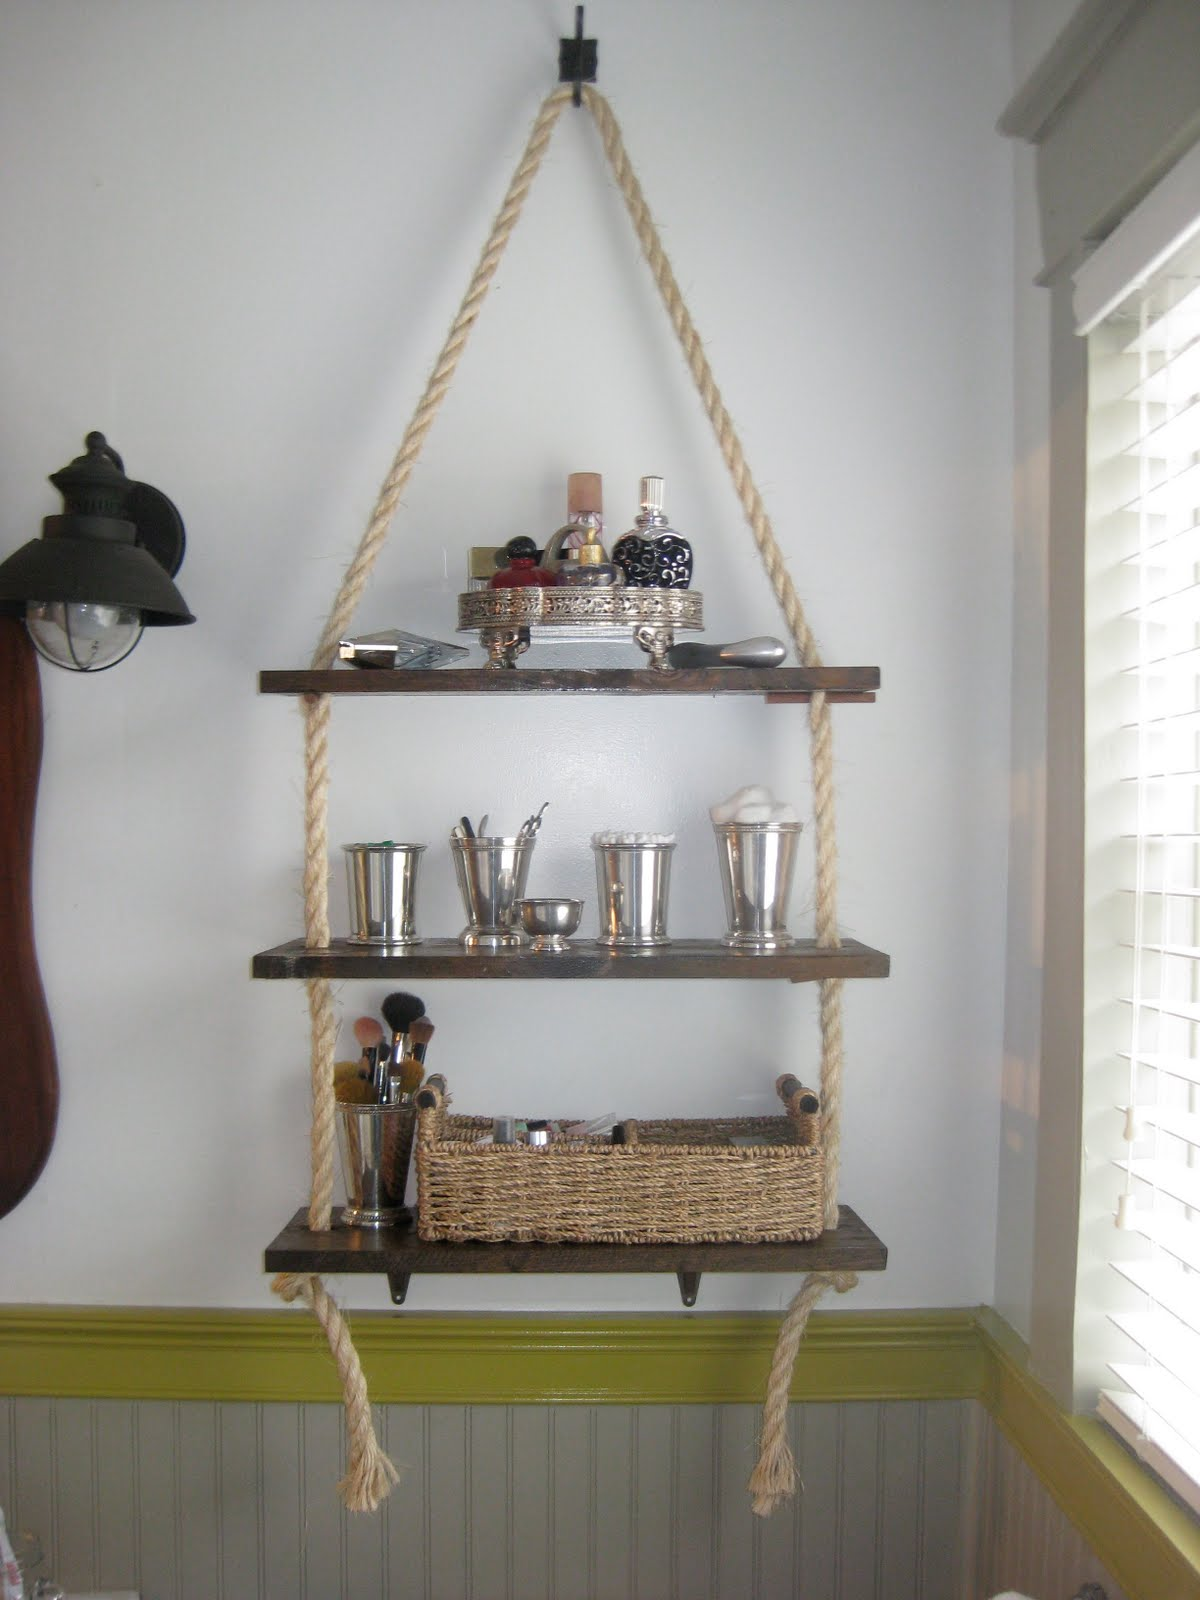 40 Beautiful DIY Bathroom Shelves Ideas > Detectview